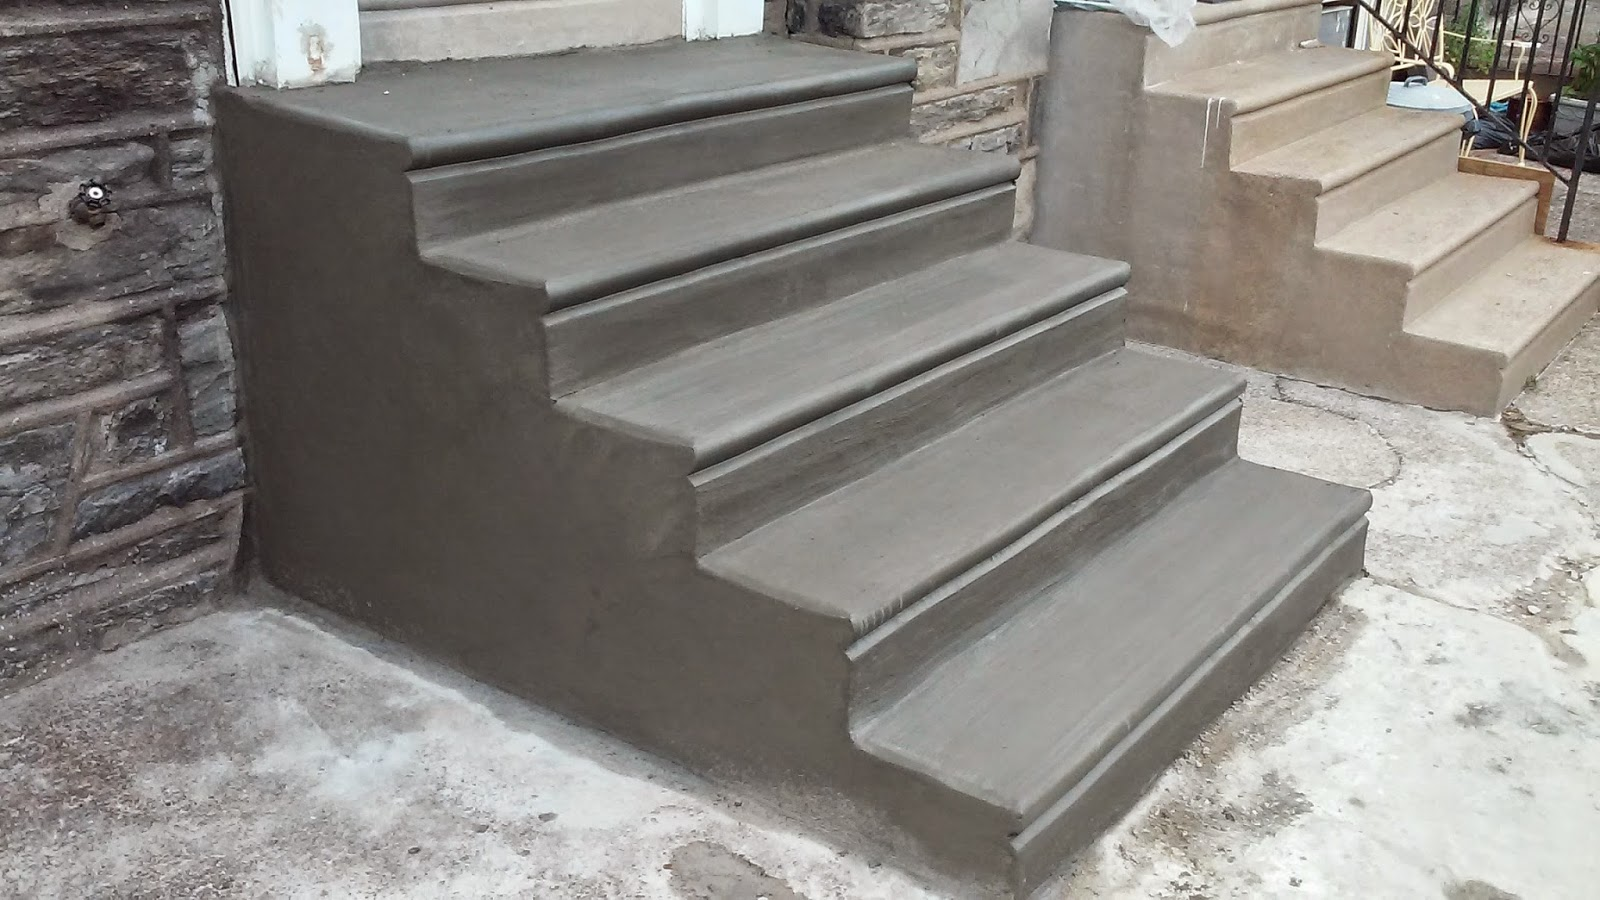 Pouring Concrete Steps With Bullnose Look   WoodworkersZone   Woodworking  Forums